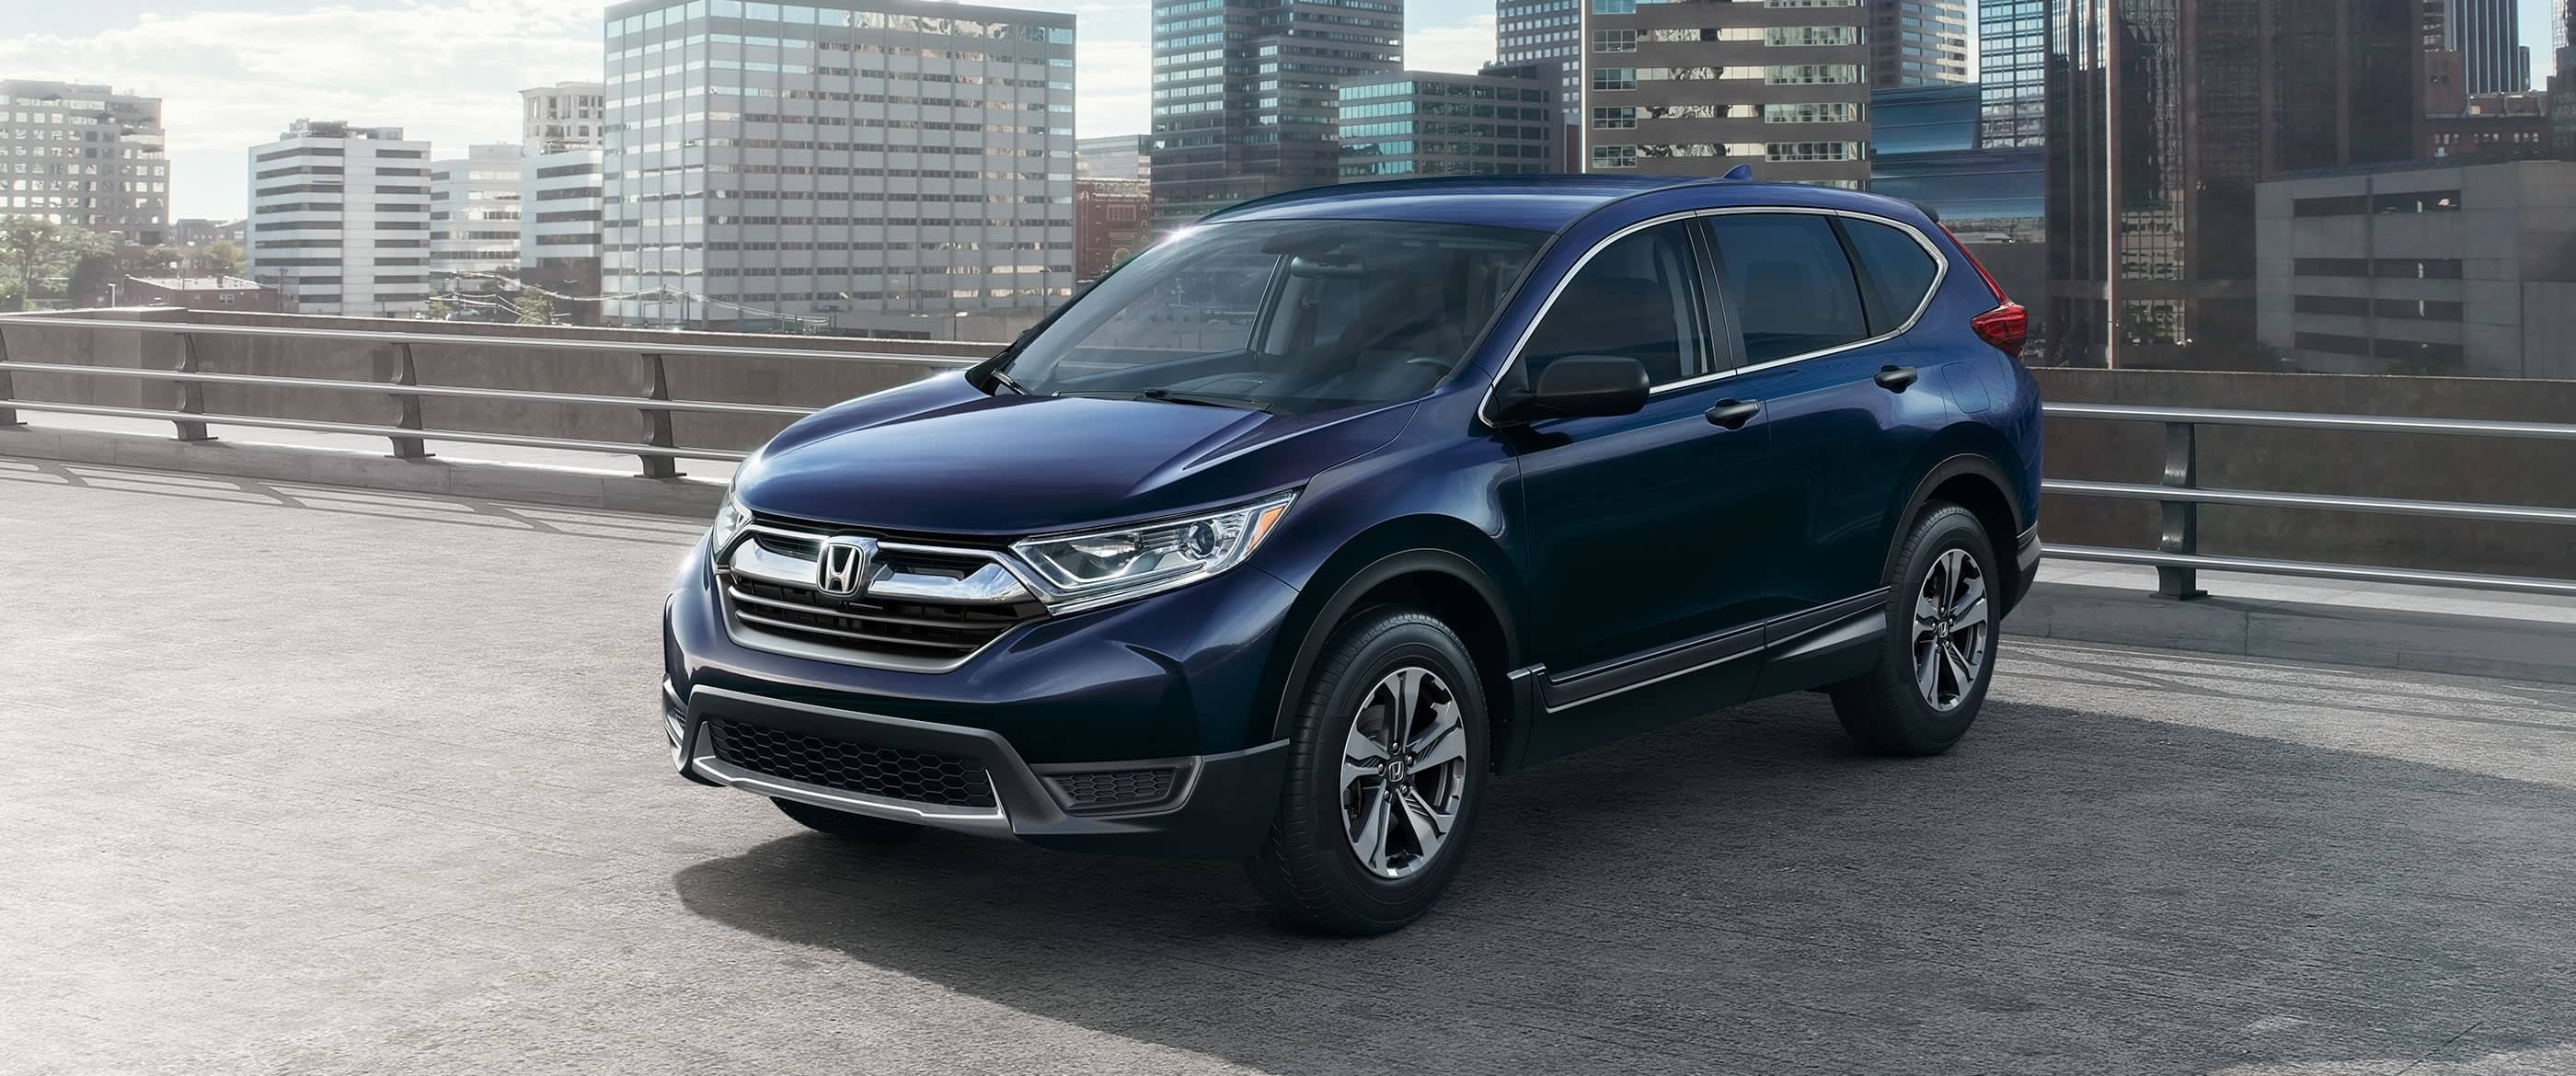 Honda Crv Wallpaper New 2018 Honda Cr V Blue Color City Background Hd Wallpaper Latest-810 Of Inspirational Honda Crv Wallpaper-810